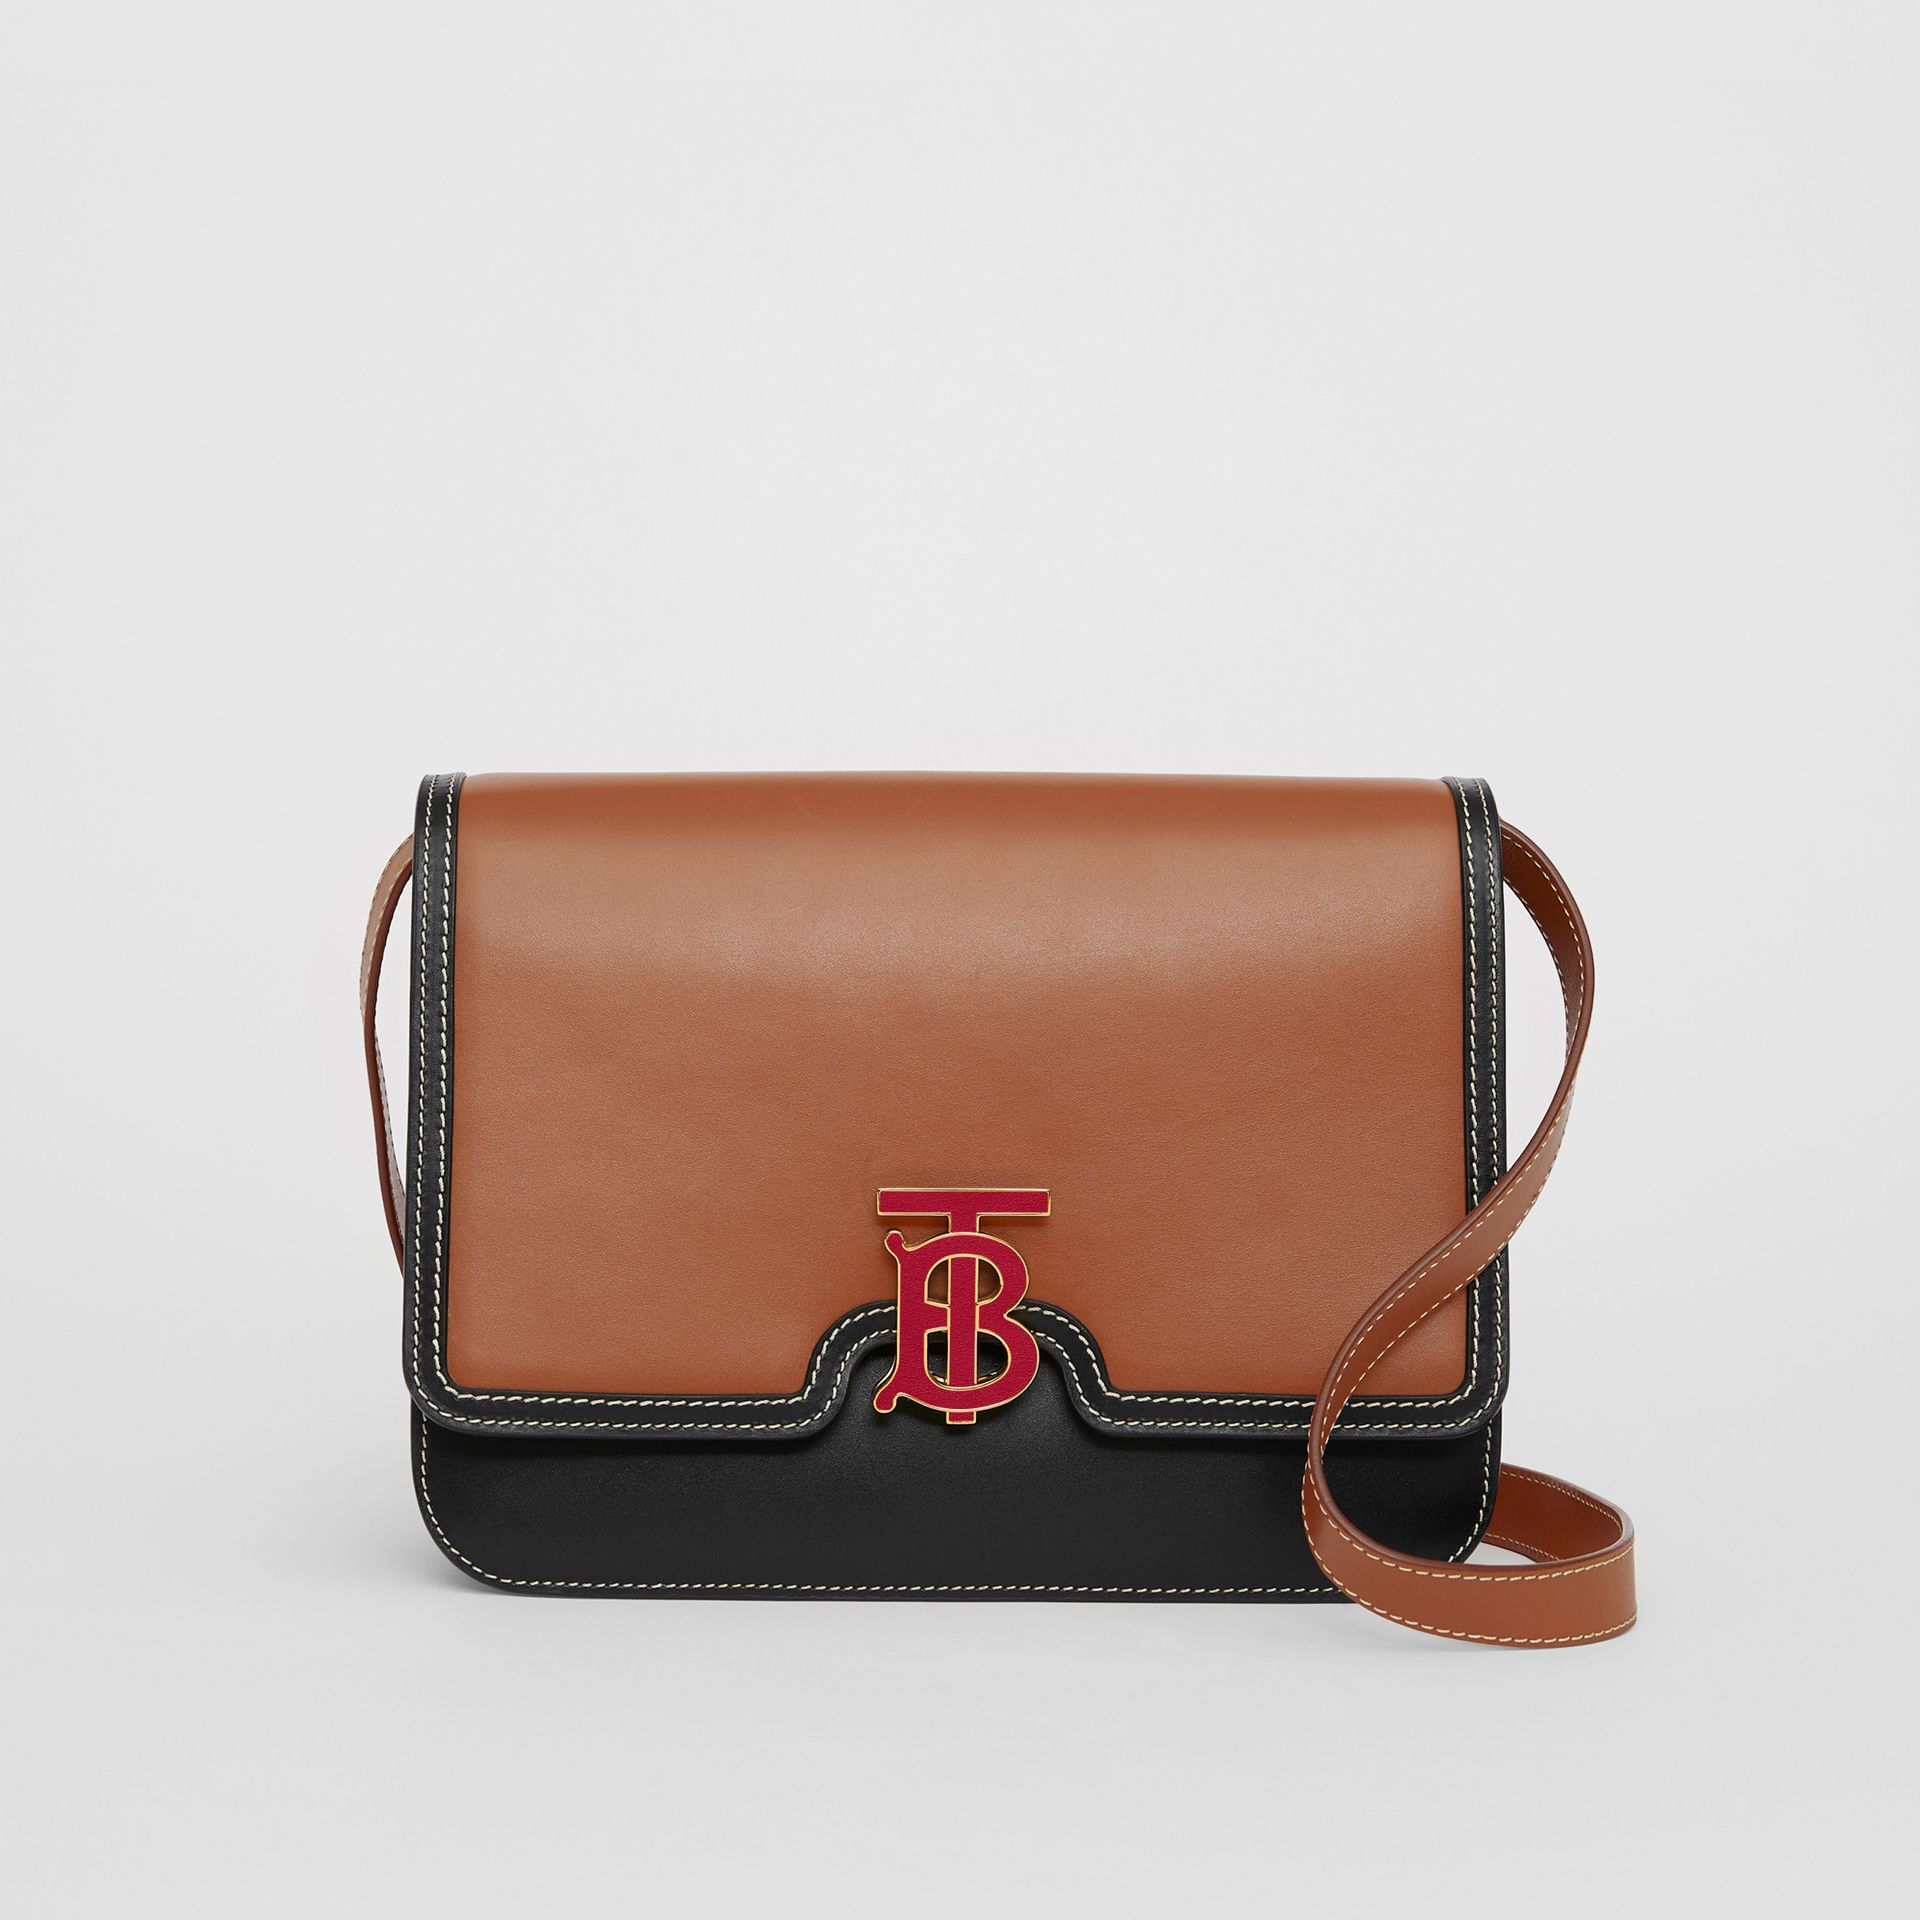 Medium Two-tone Leather TB Bag in Malt Brown/black - Women | Burberry United Kingdom - gallery image 0